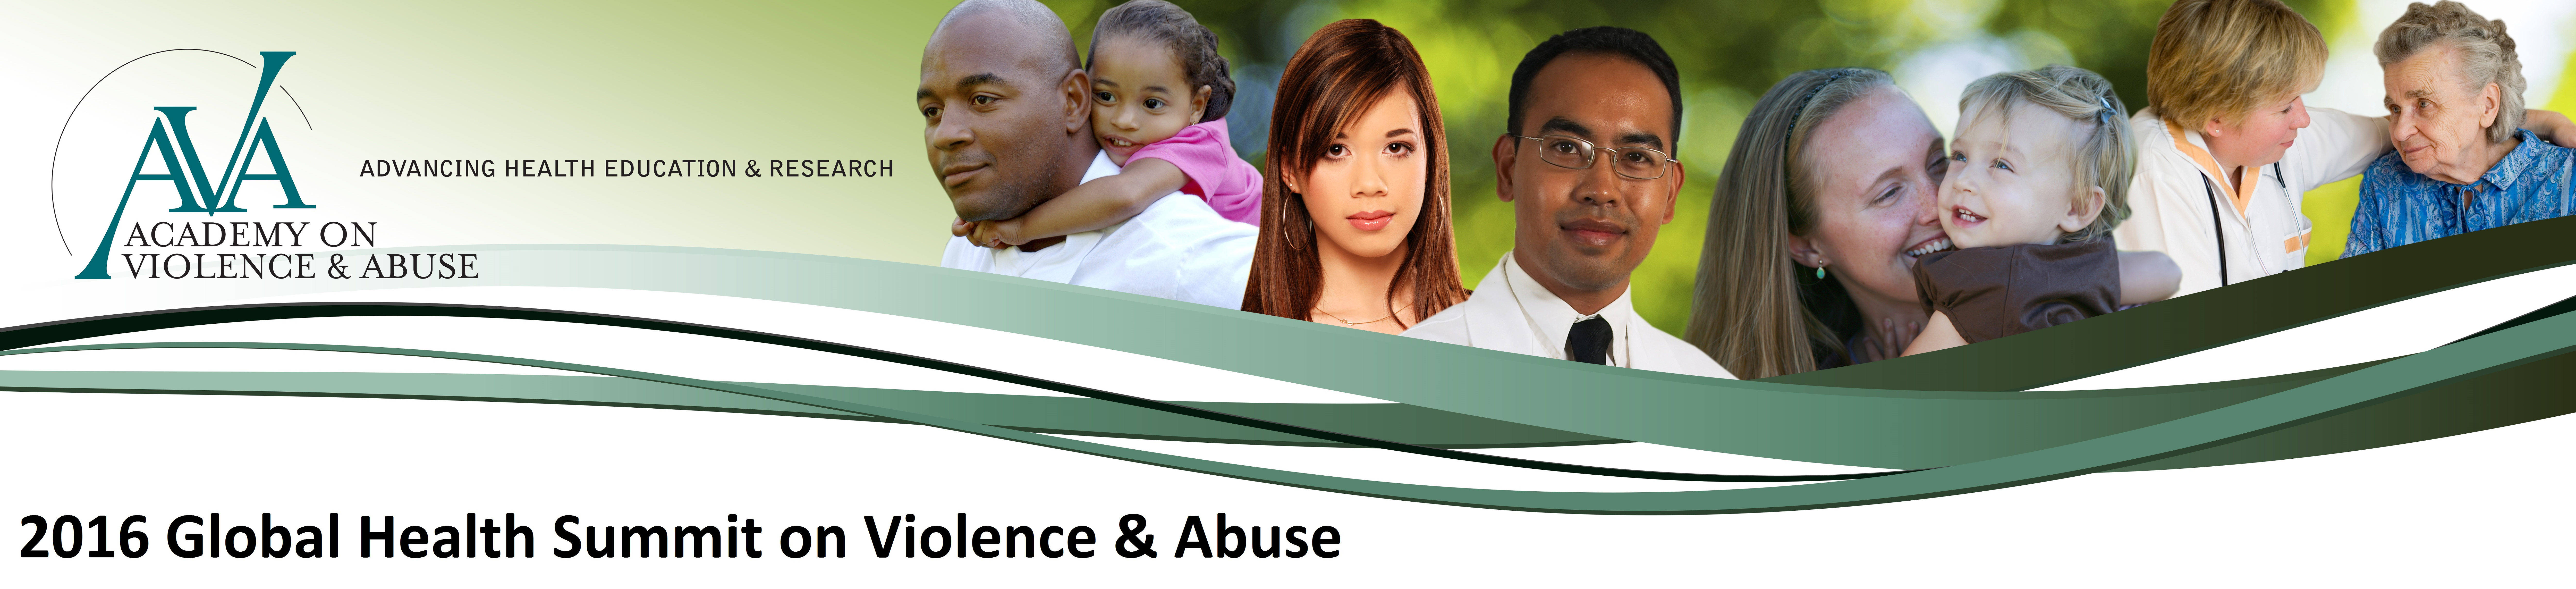 2016 Global Health Summit on Violence & Abuse Registration is open!!